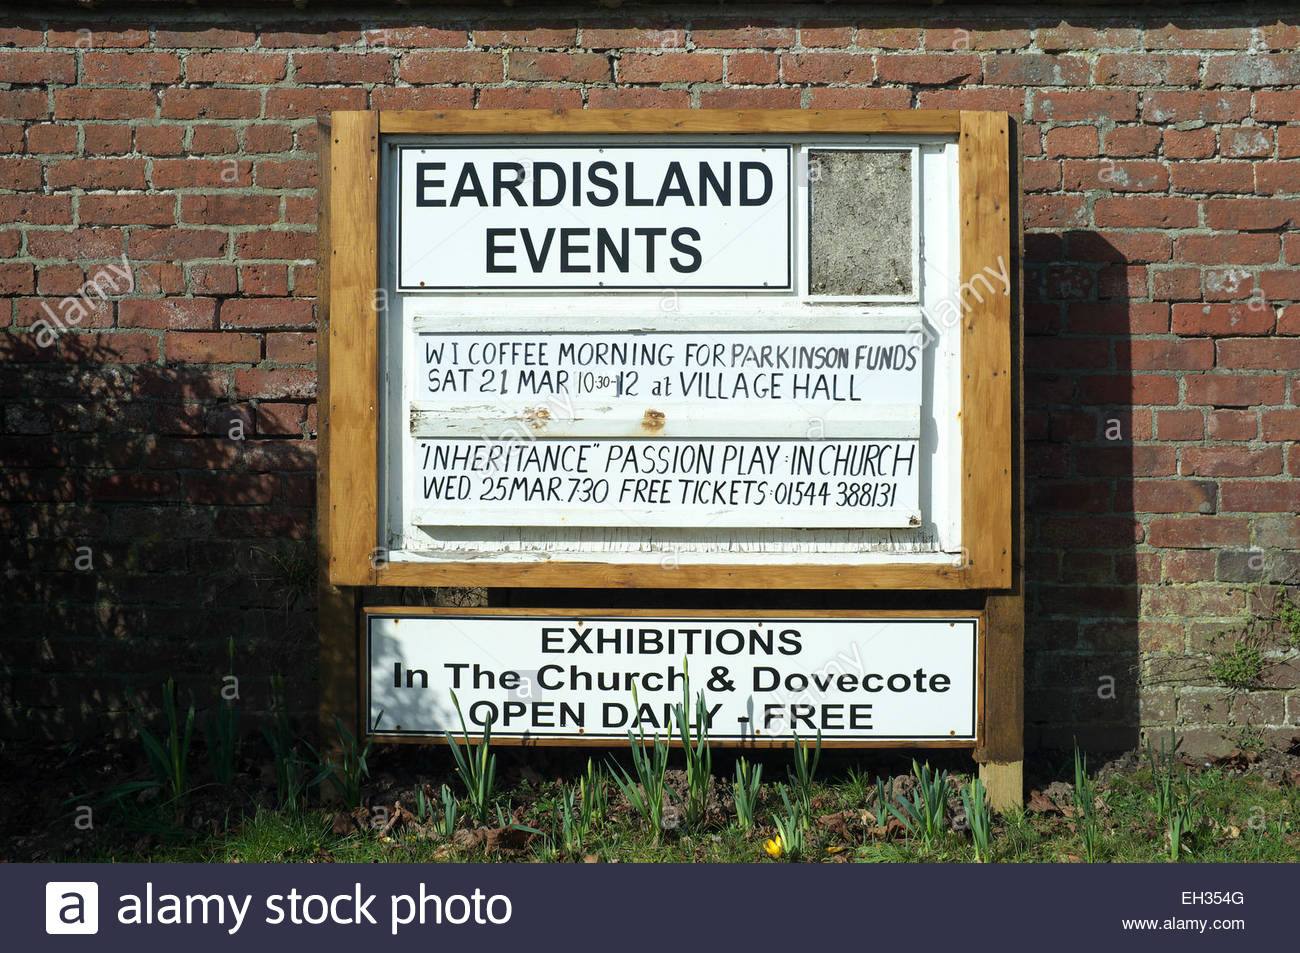 Events noticeboard in the village of Eardisland, in Herefordshire, UK. - Stock Image